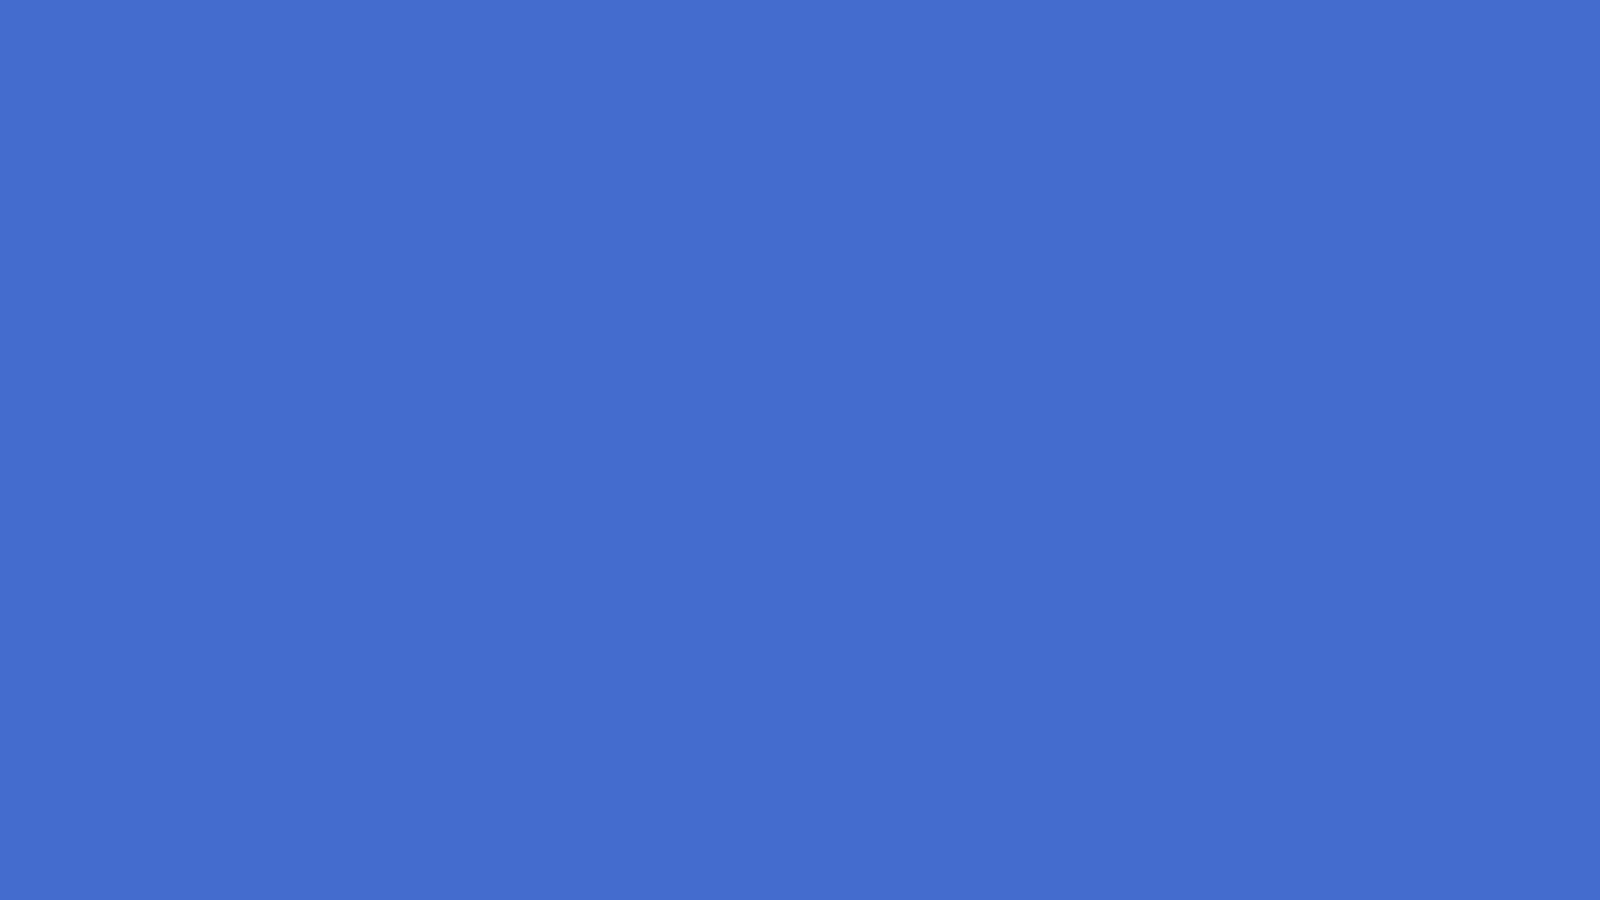 1600x900 Han Blue Solid Color Background